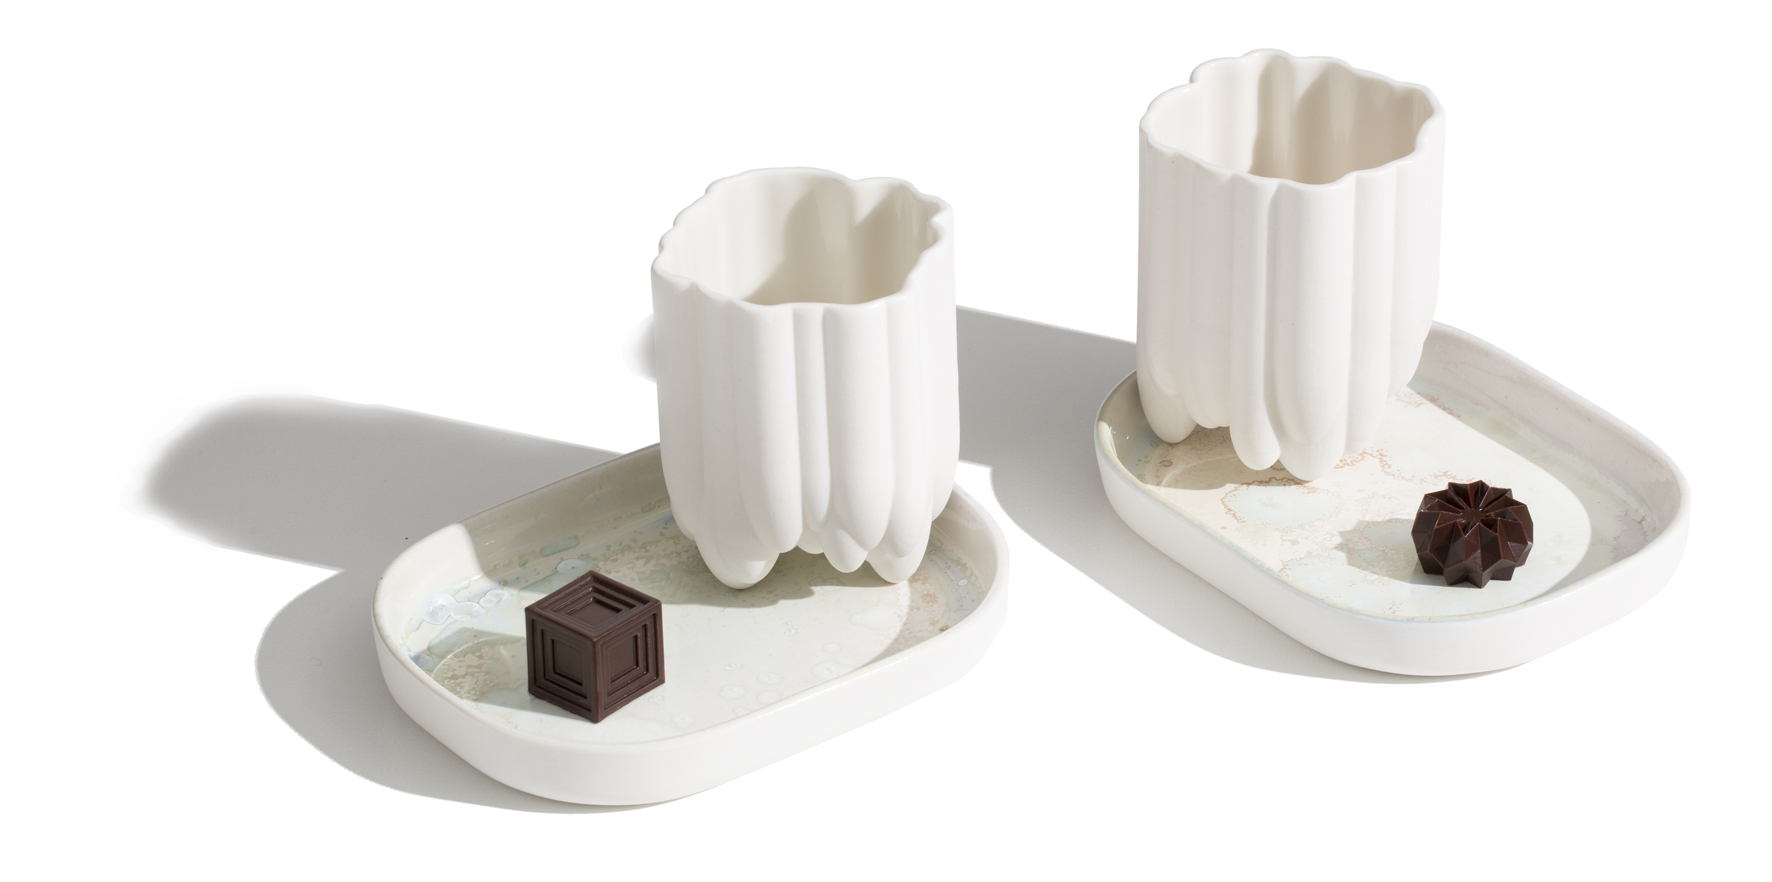 Modern serving options designed for the ultimate chocolate indulgence